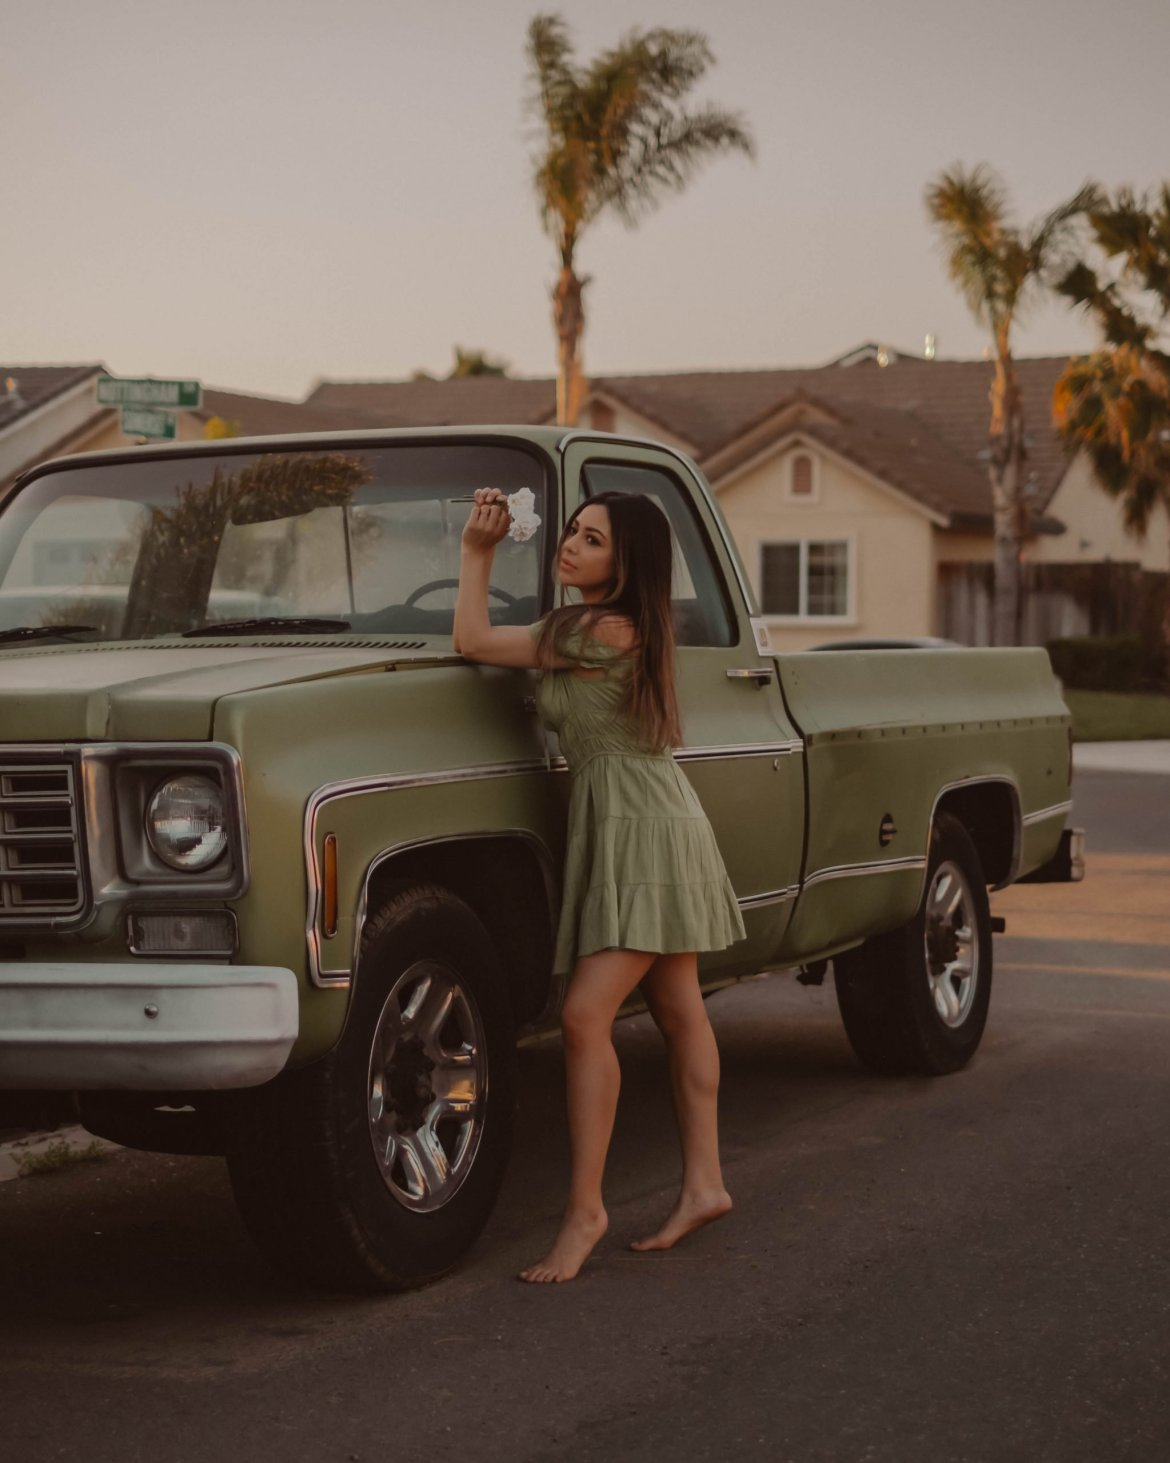 5 easy at-home photoshoot ideas - retro car photography, vintage style, creative photography